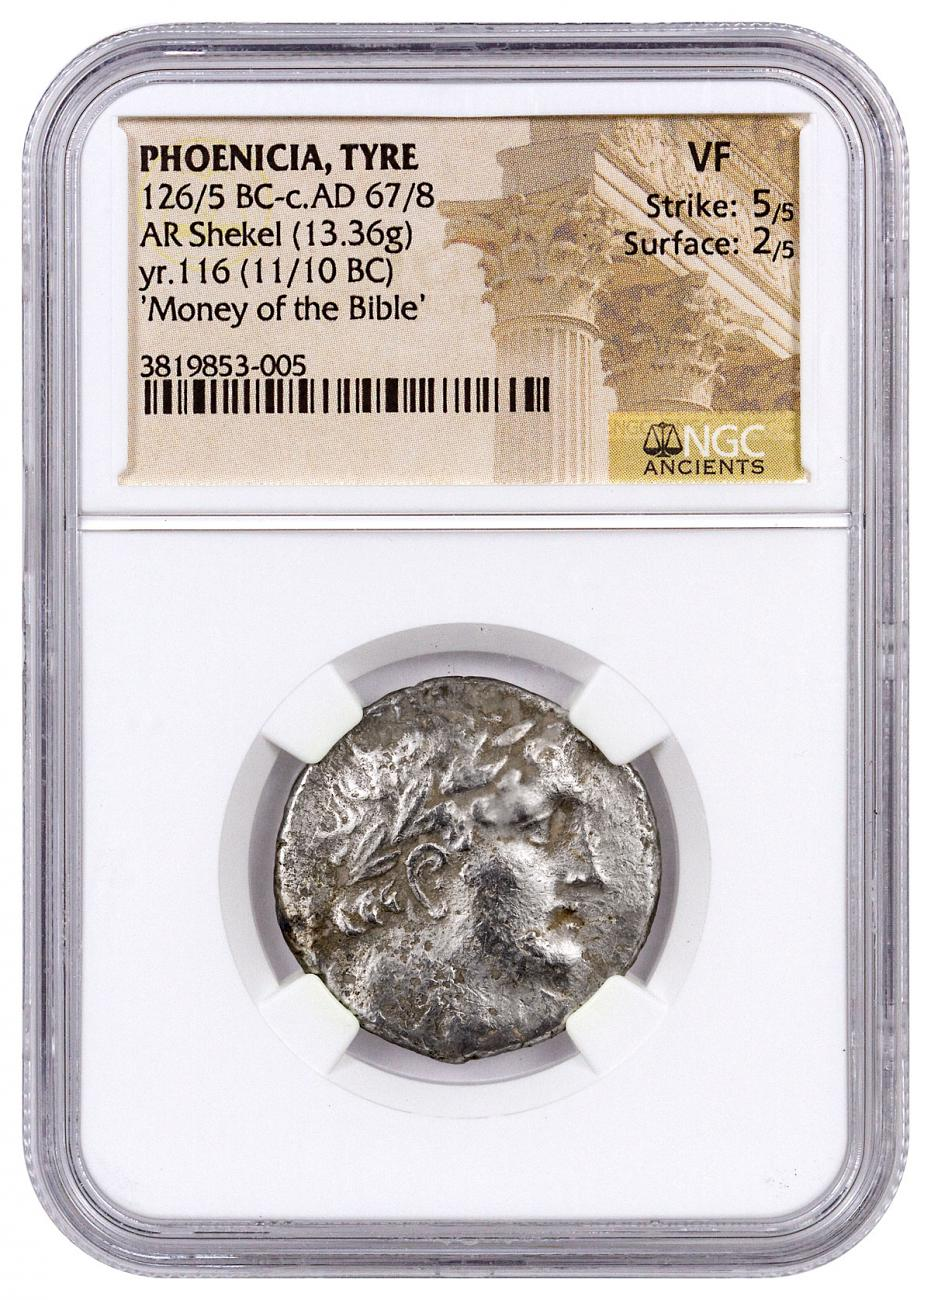 Phoenicia, Tyre Silver Shekel (126/5 BC-c.AD 67/8) - Money of the Bible Yr.116 (11/10 BC) - obv. Melkart/rv. Eagle on Prow NGC VF (Strike: 5/5, Surface: 2/5) MINTED NEAR TIME OF CHRIST'S BIRTH